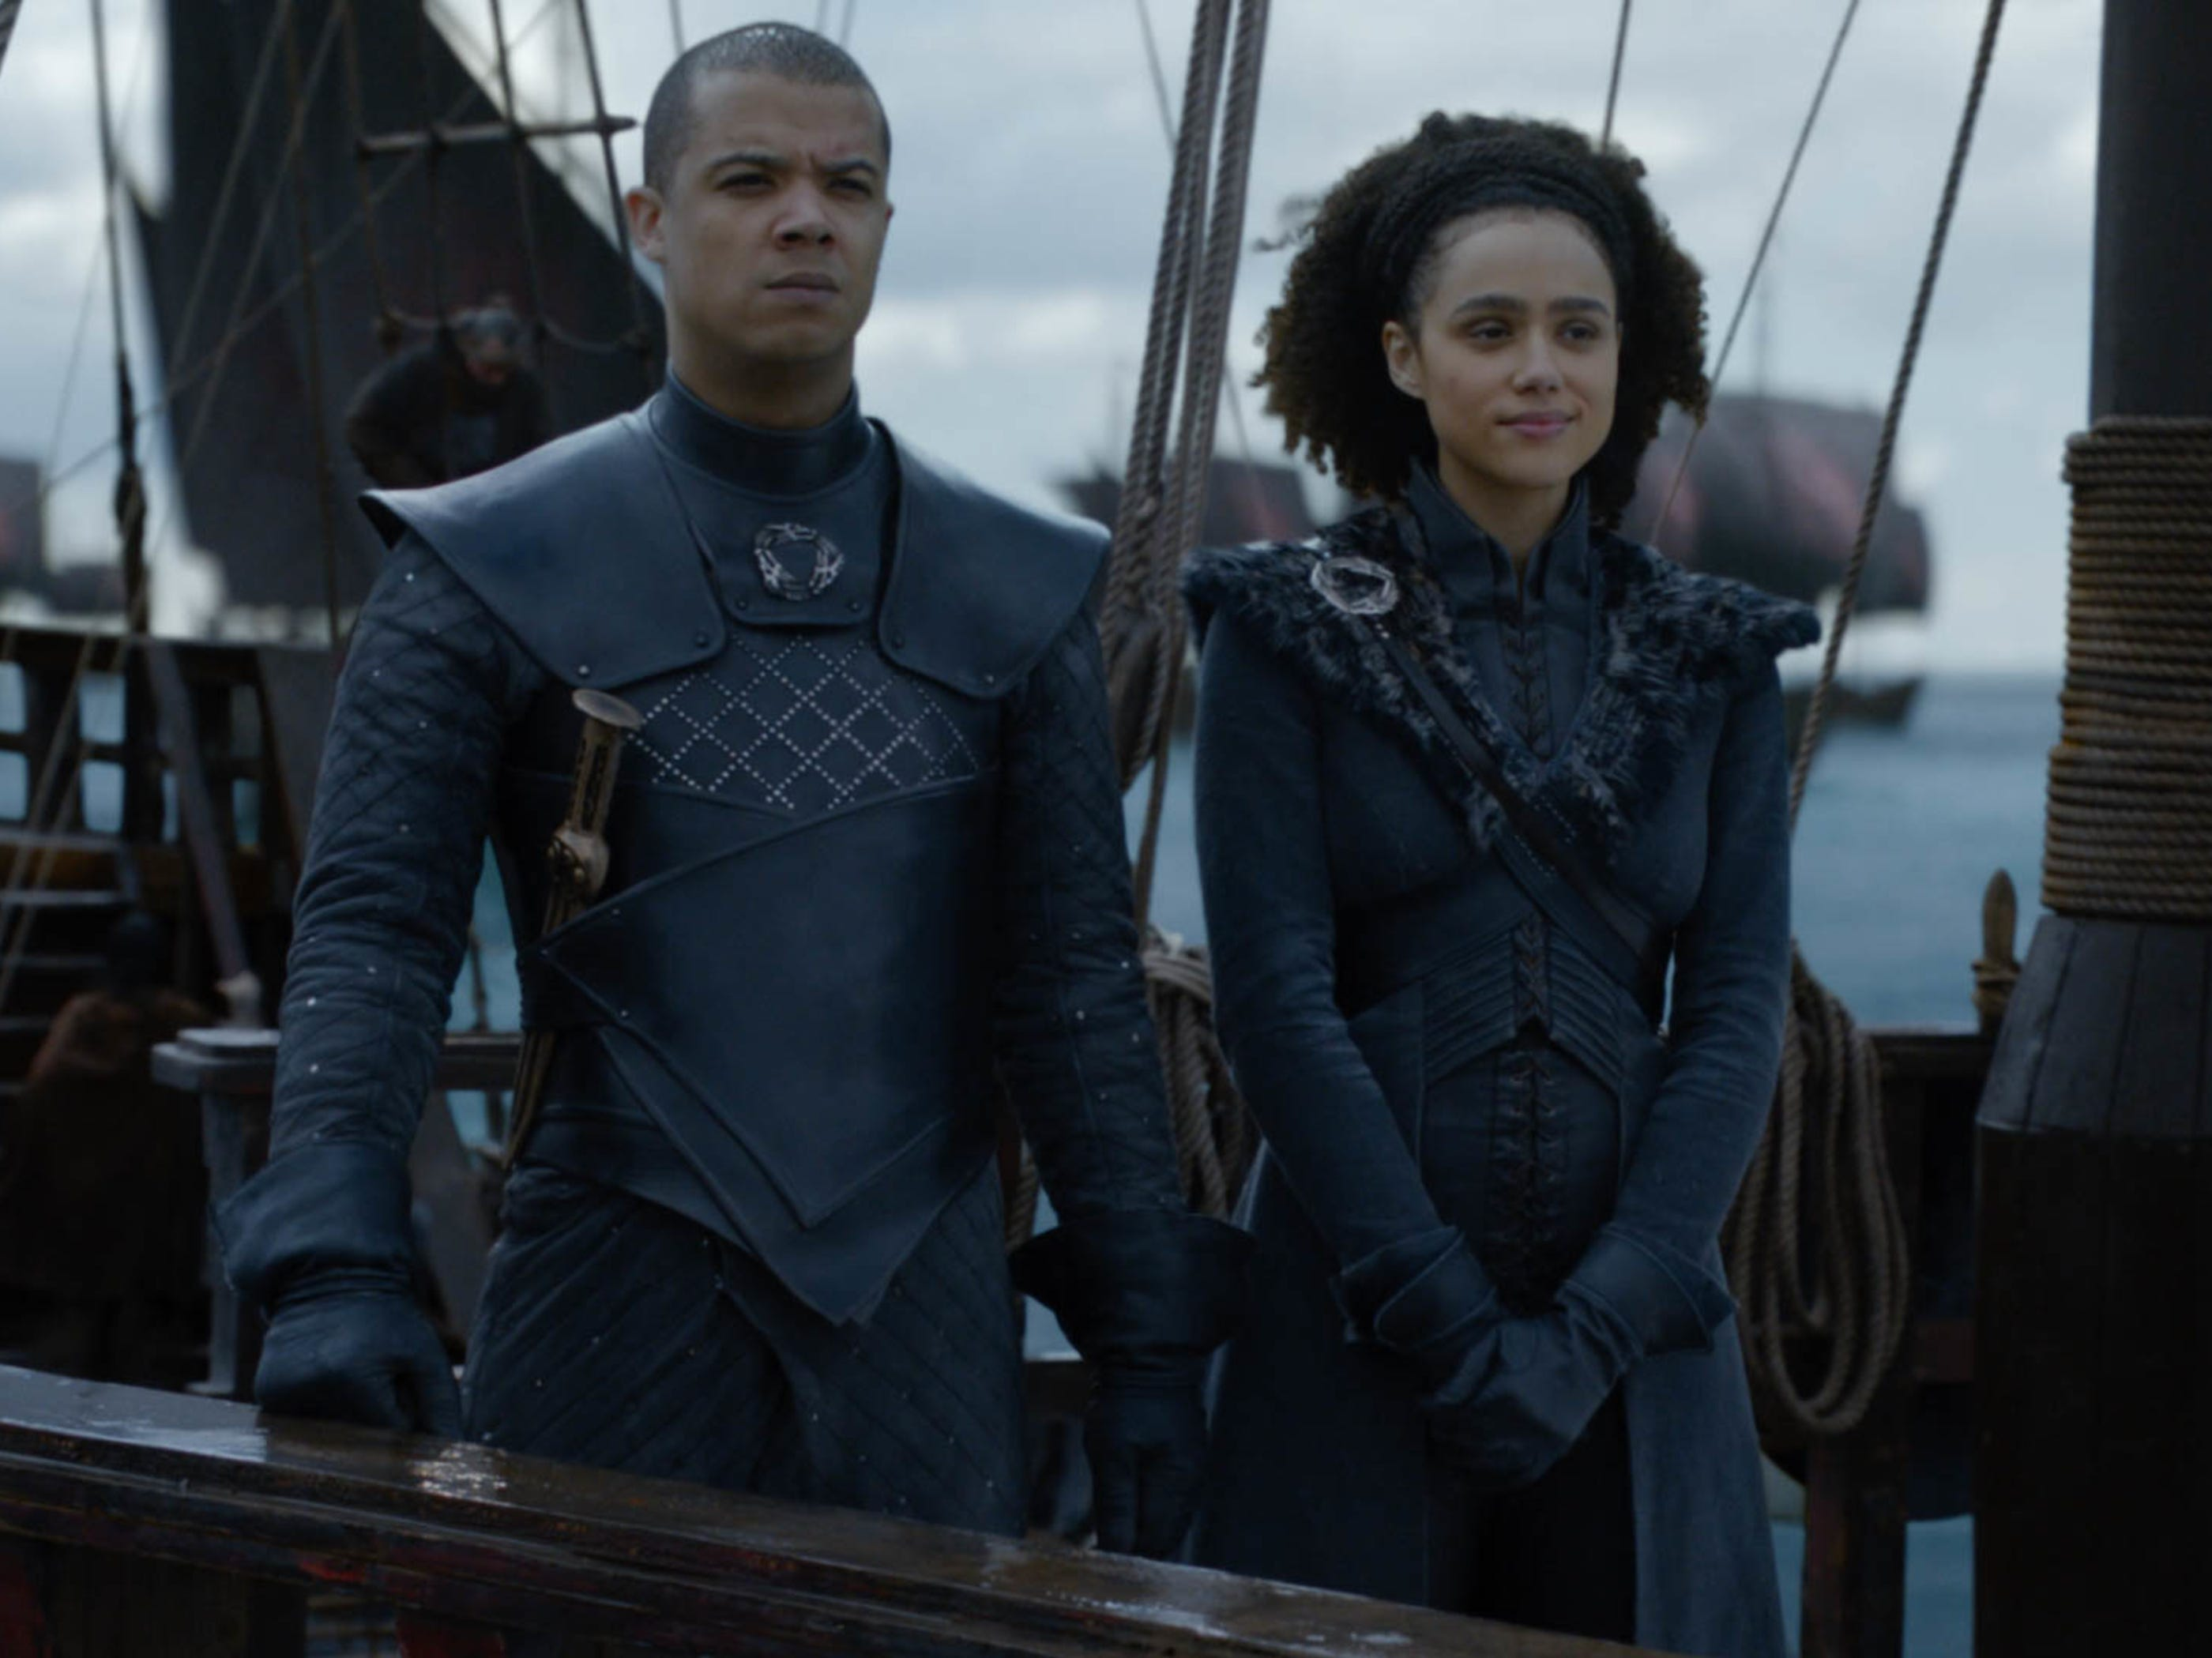 Missandei (Nathalie Emmanuel), right, looks happy with Grey Worm (Jacob Anderson). Happiness rarely works out on 'Game of Thrones.'